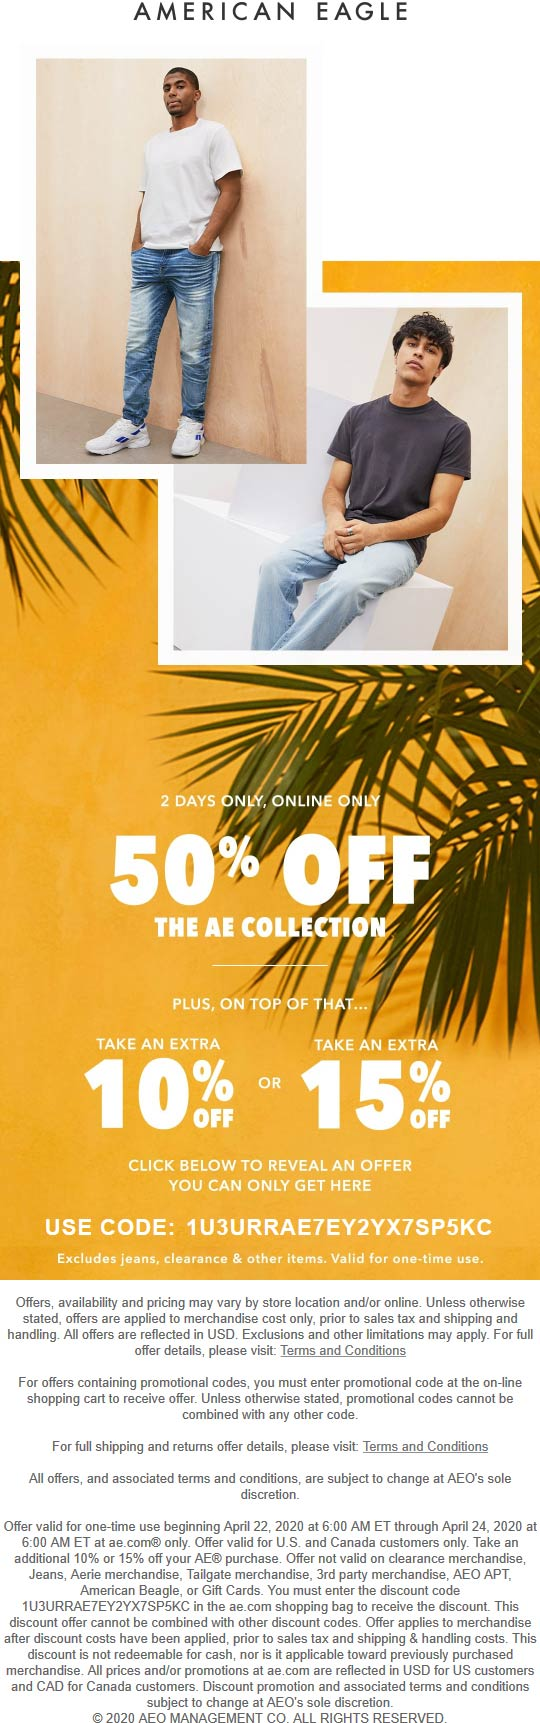 American Eagle coupons & promo code for [June 2020]